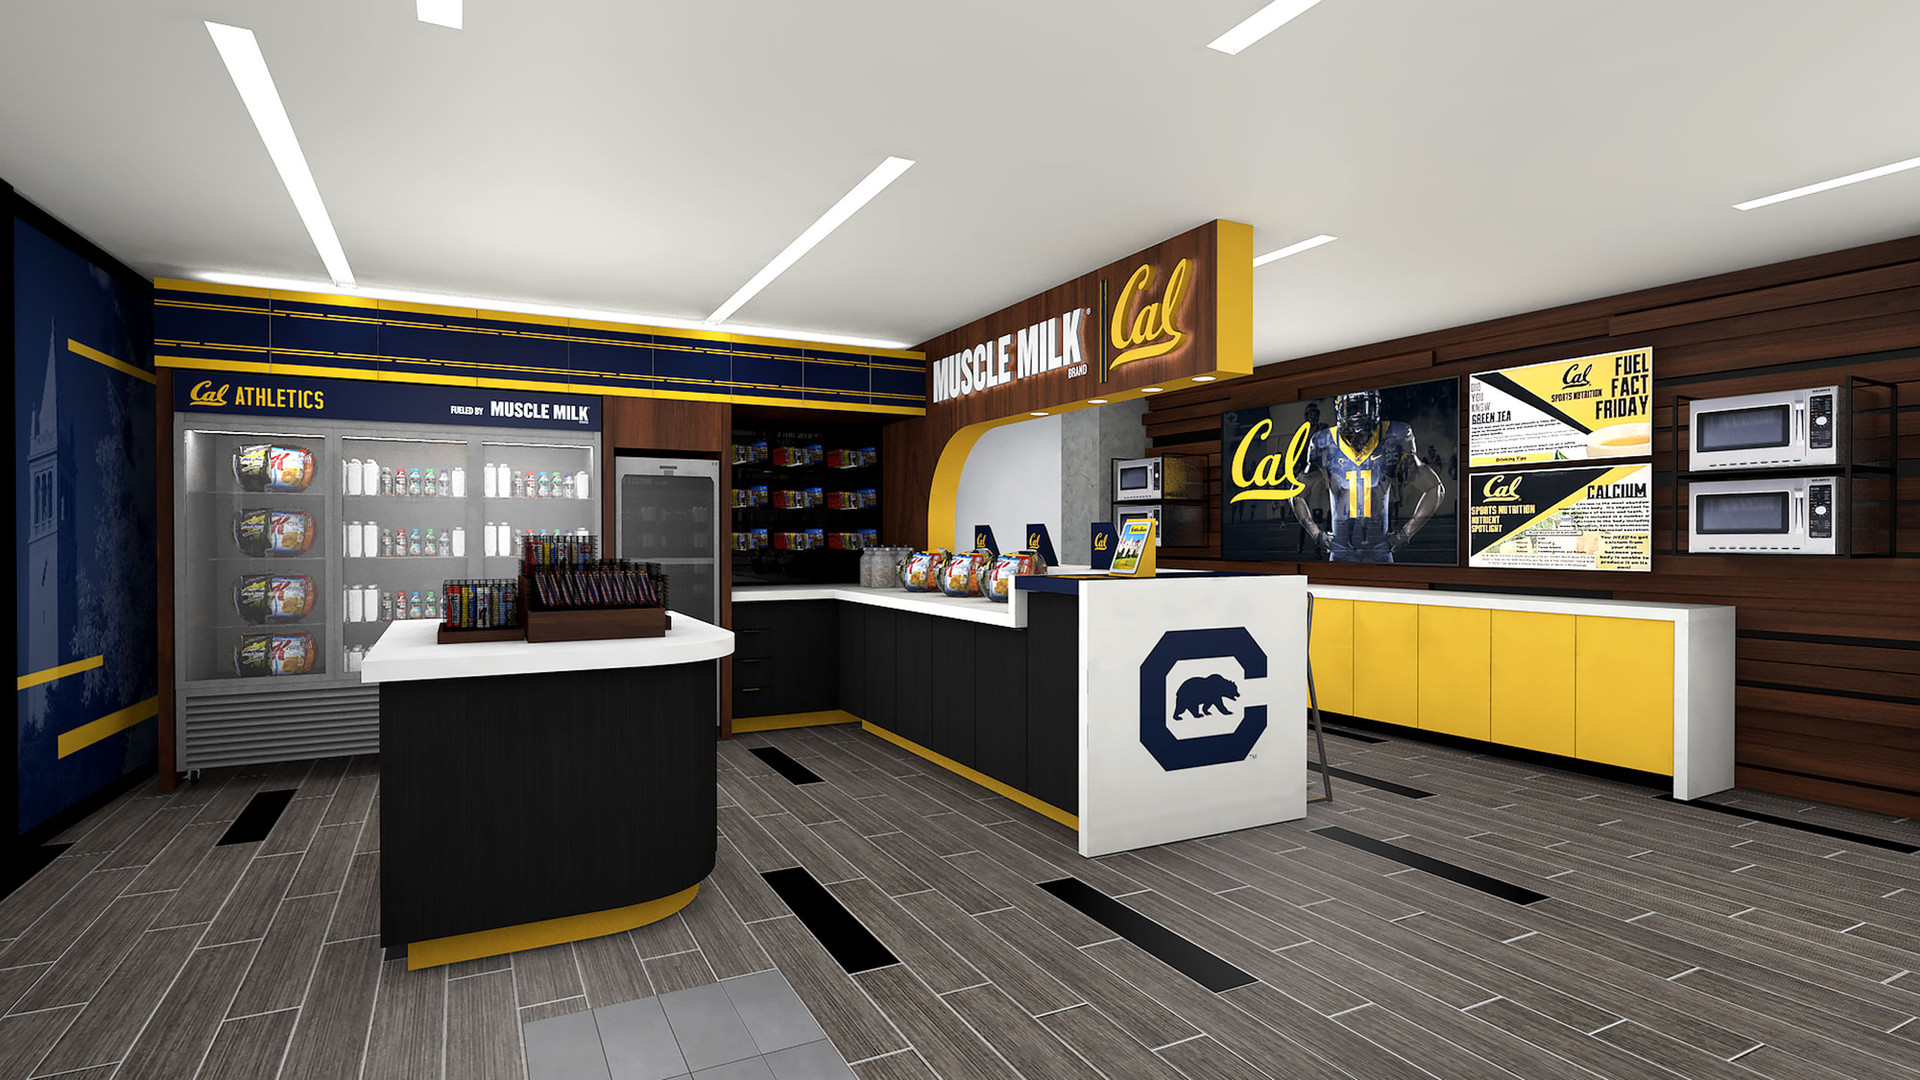 Cal Berkeley, Fueling Station '18